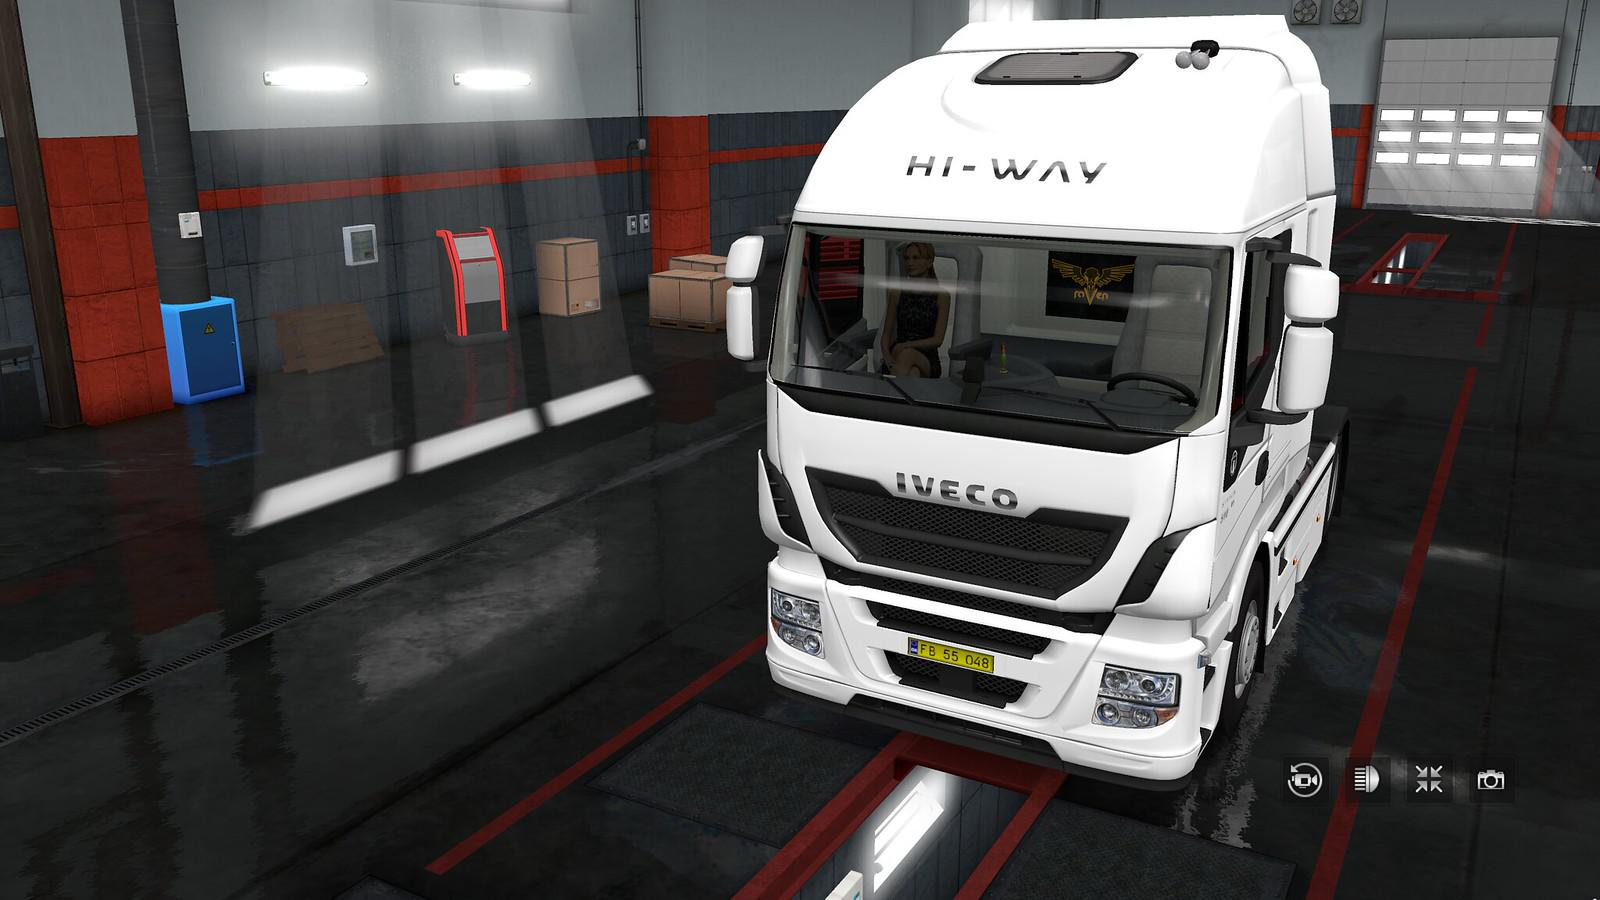 ETS2 - Exterior View Reworked for Iveco Hi-Way V1.0 (1.35.x)